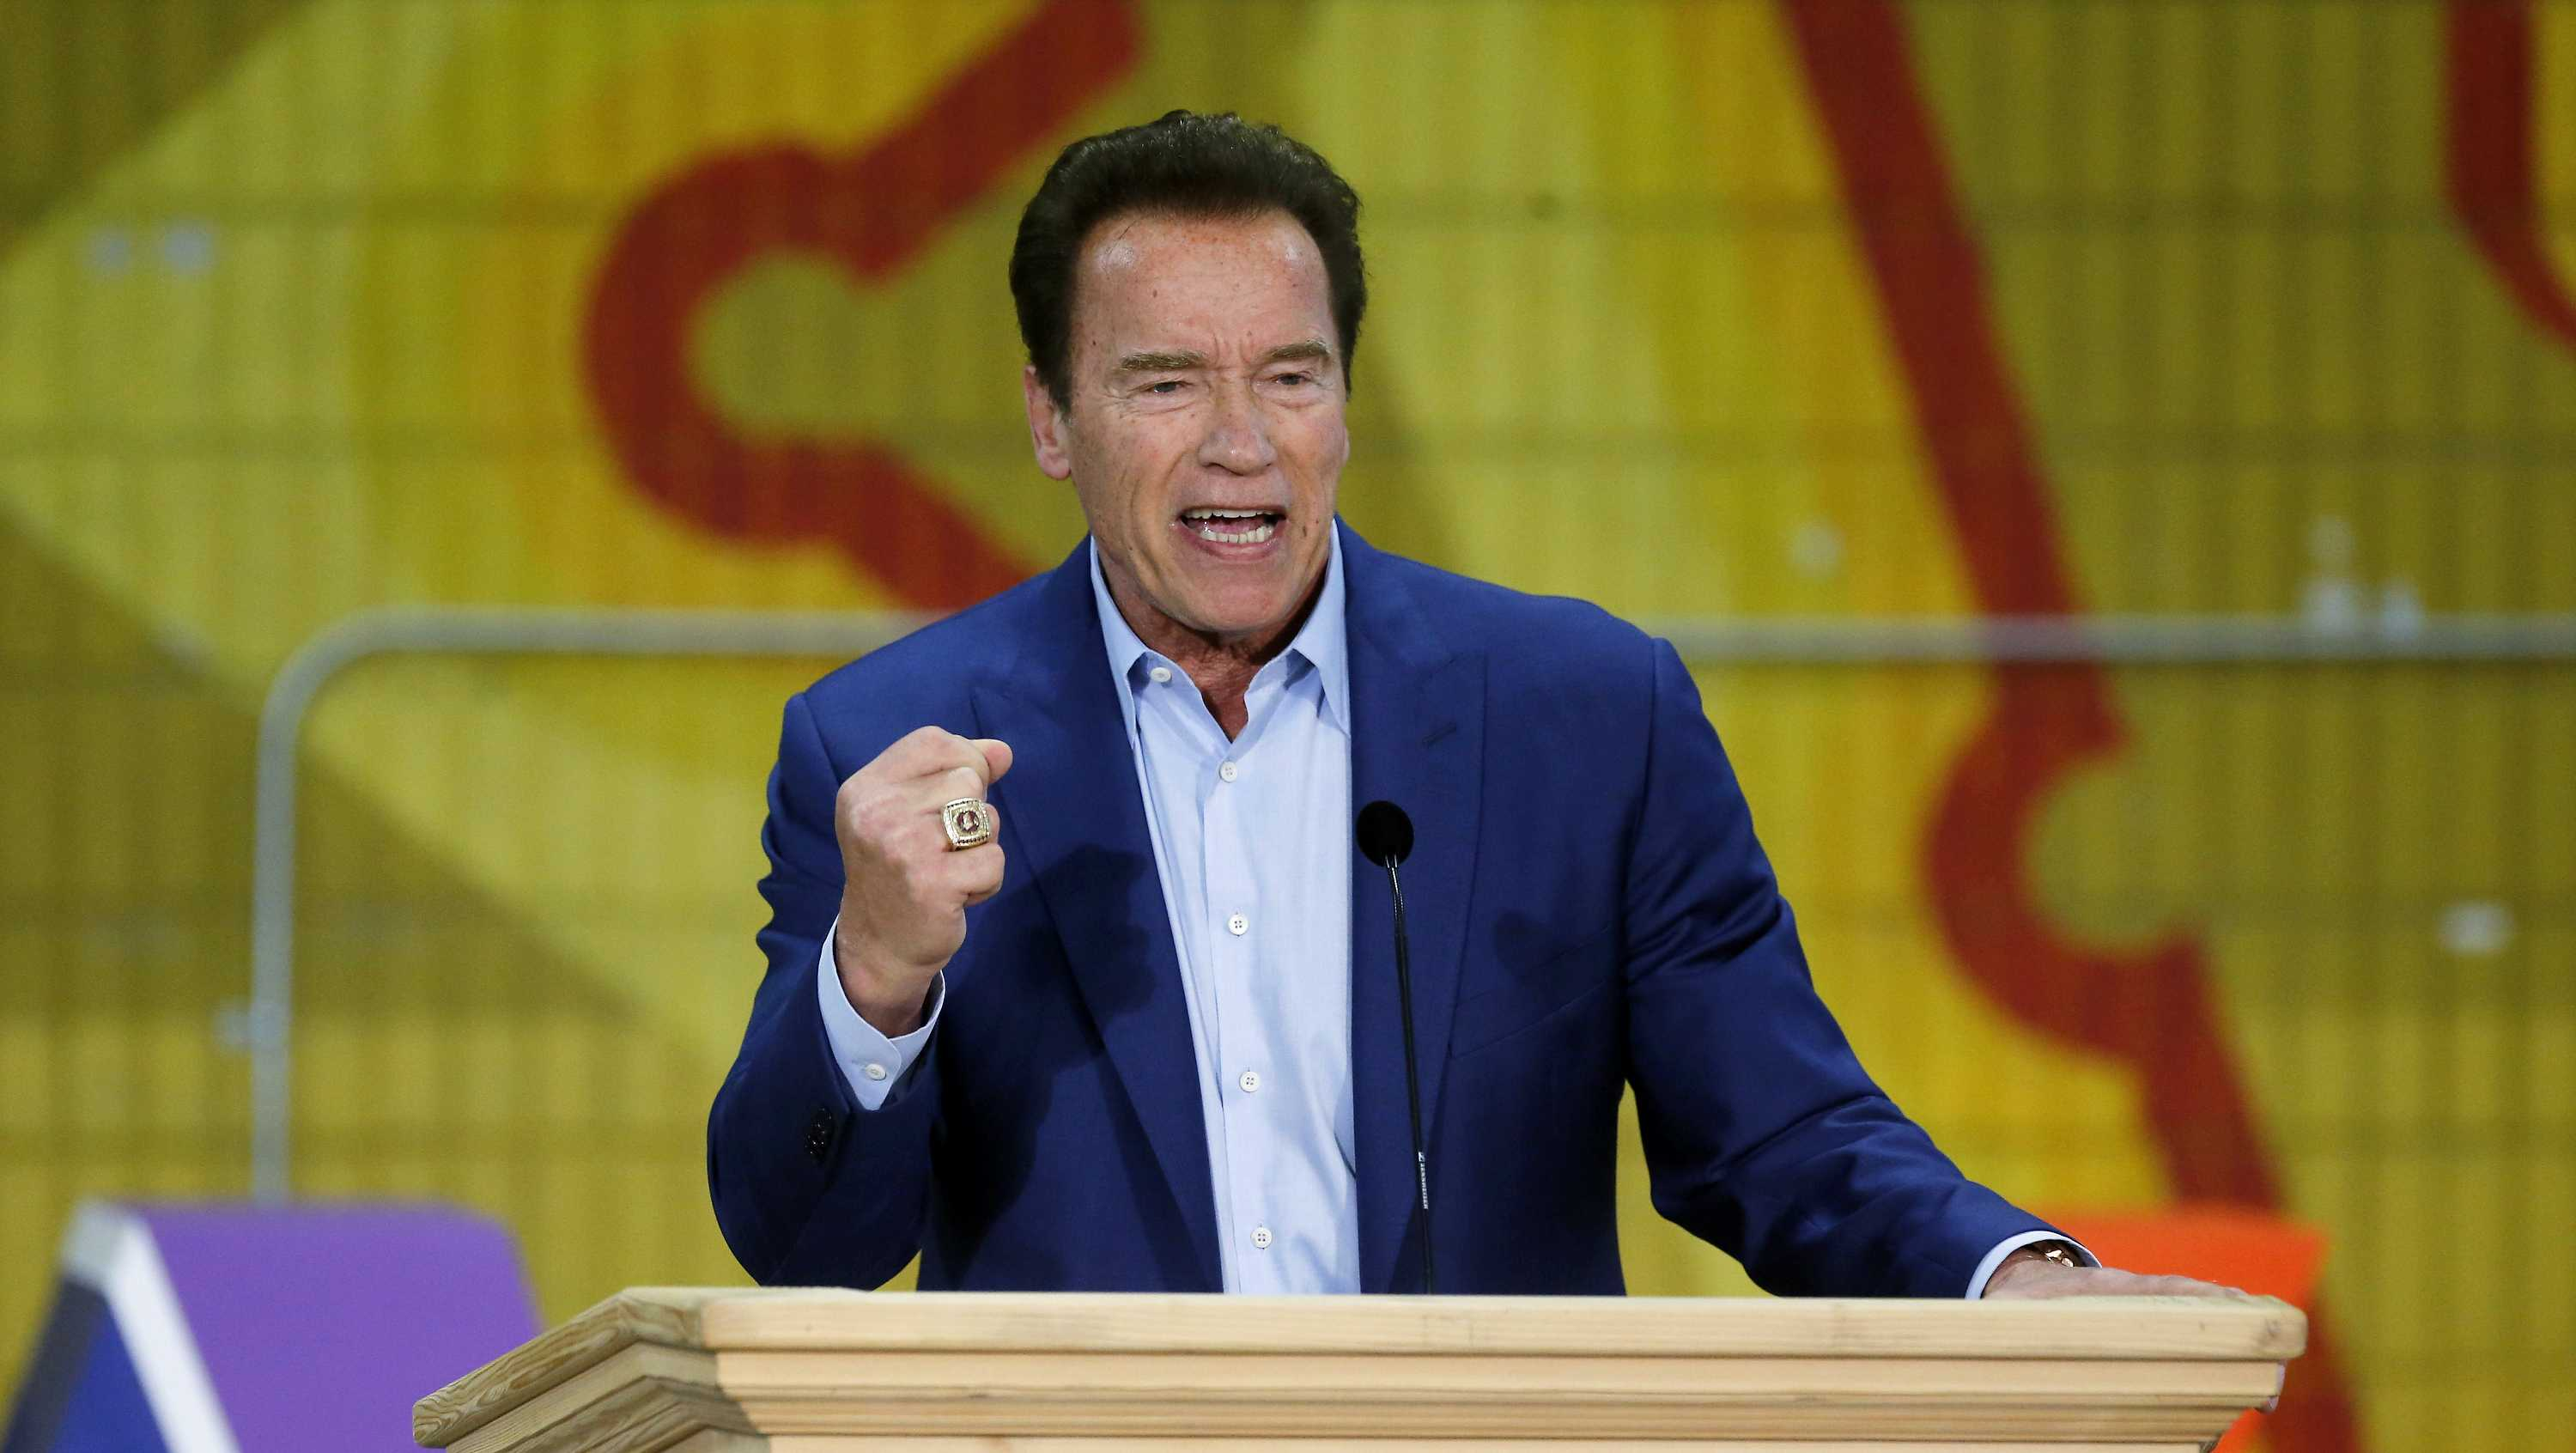 Former California Gov. Arnold Schwarzenegger speaks at the first New Way California Summit, a political committee eager to reshape the state GOP, at the Hollenbeck Youth Center in Los Angeles, Wednesday, March 21, 2018.